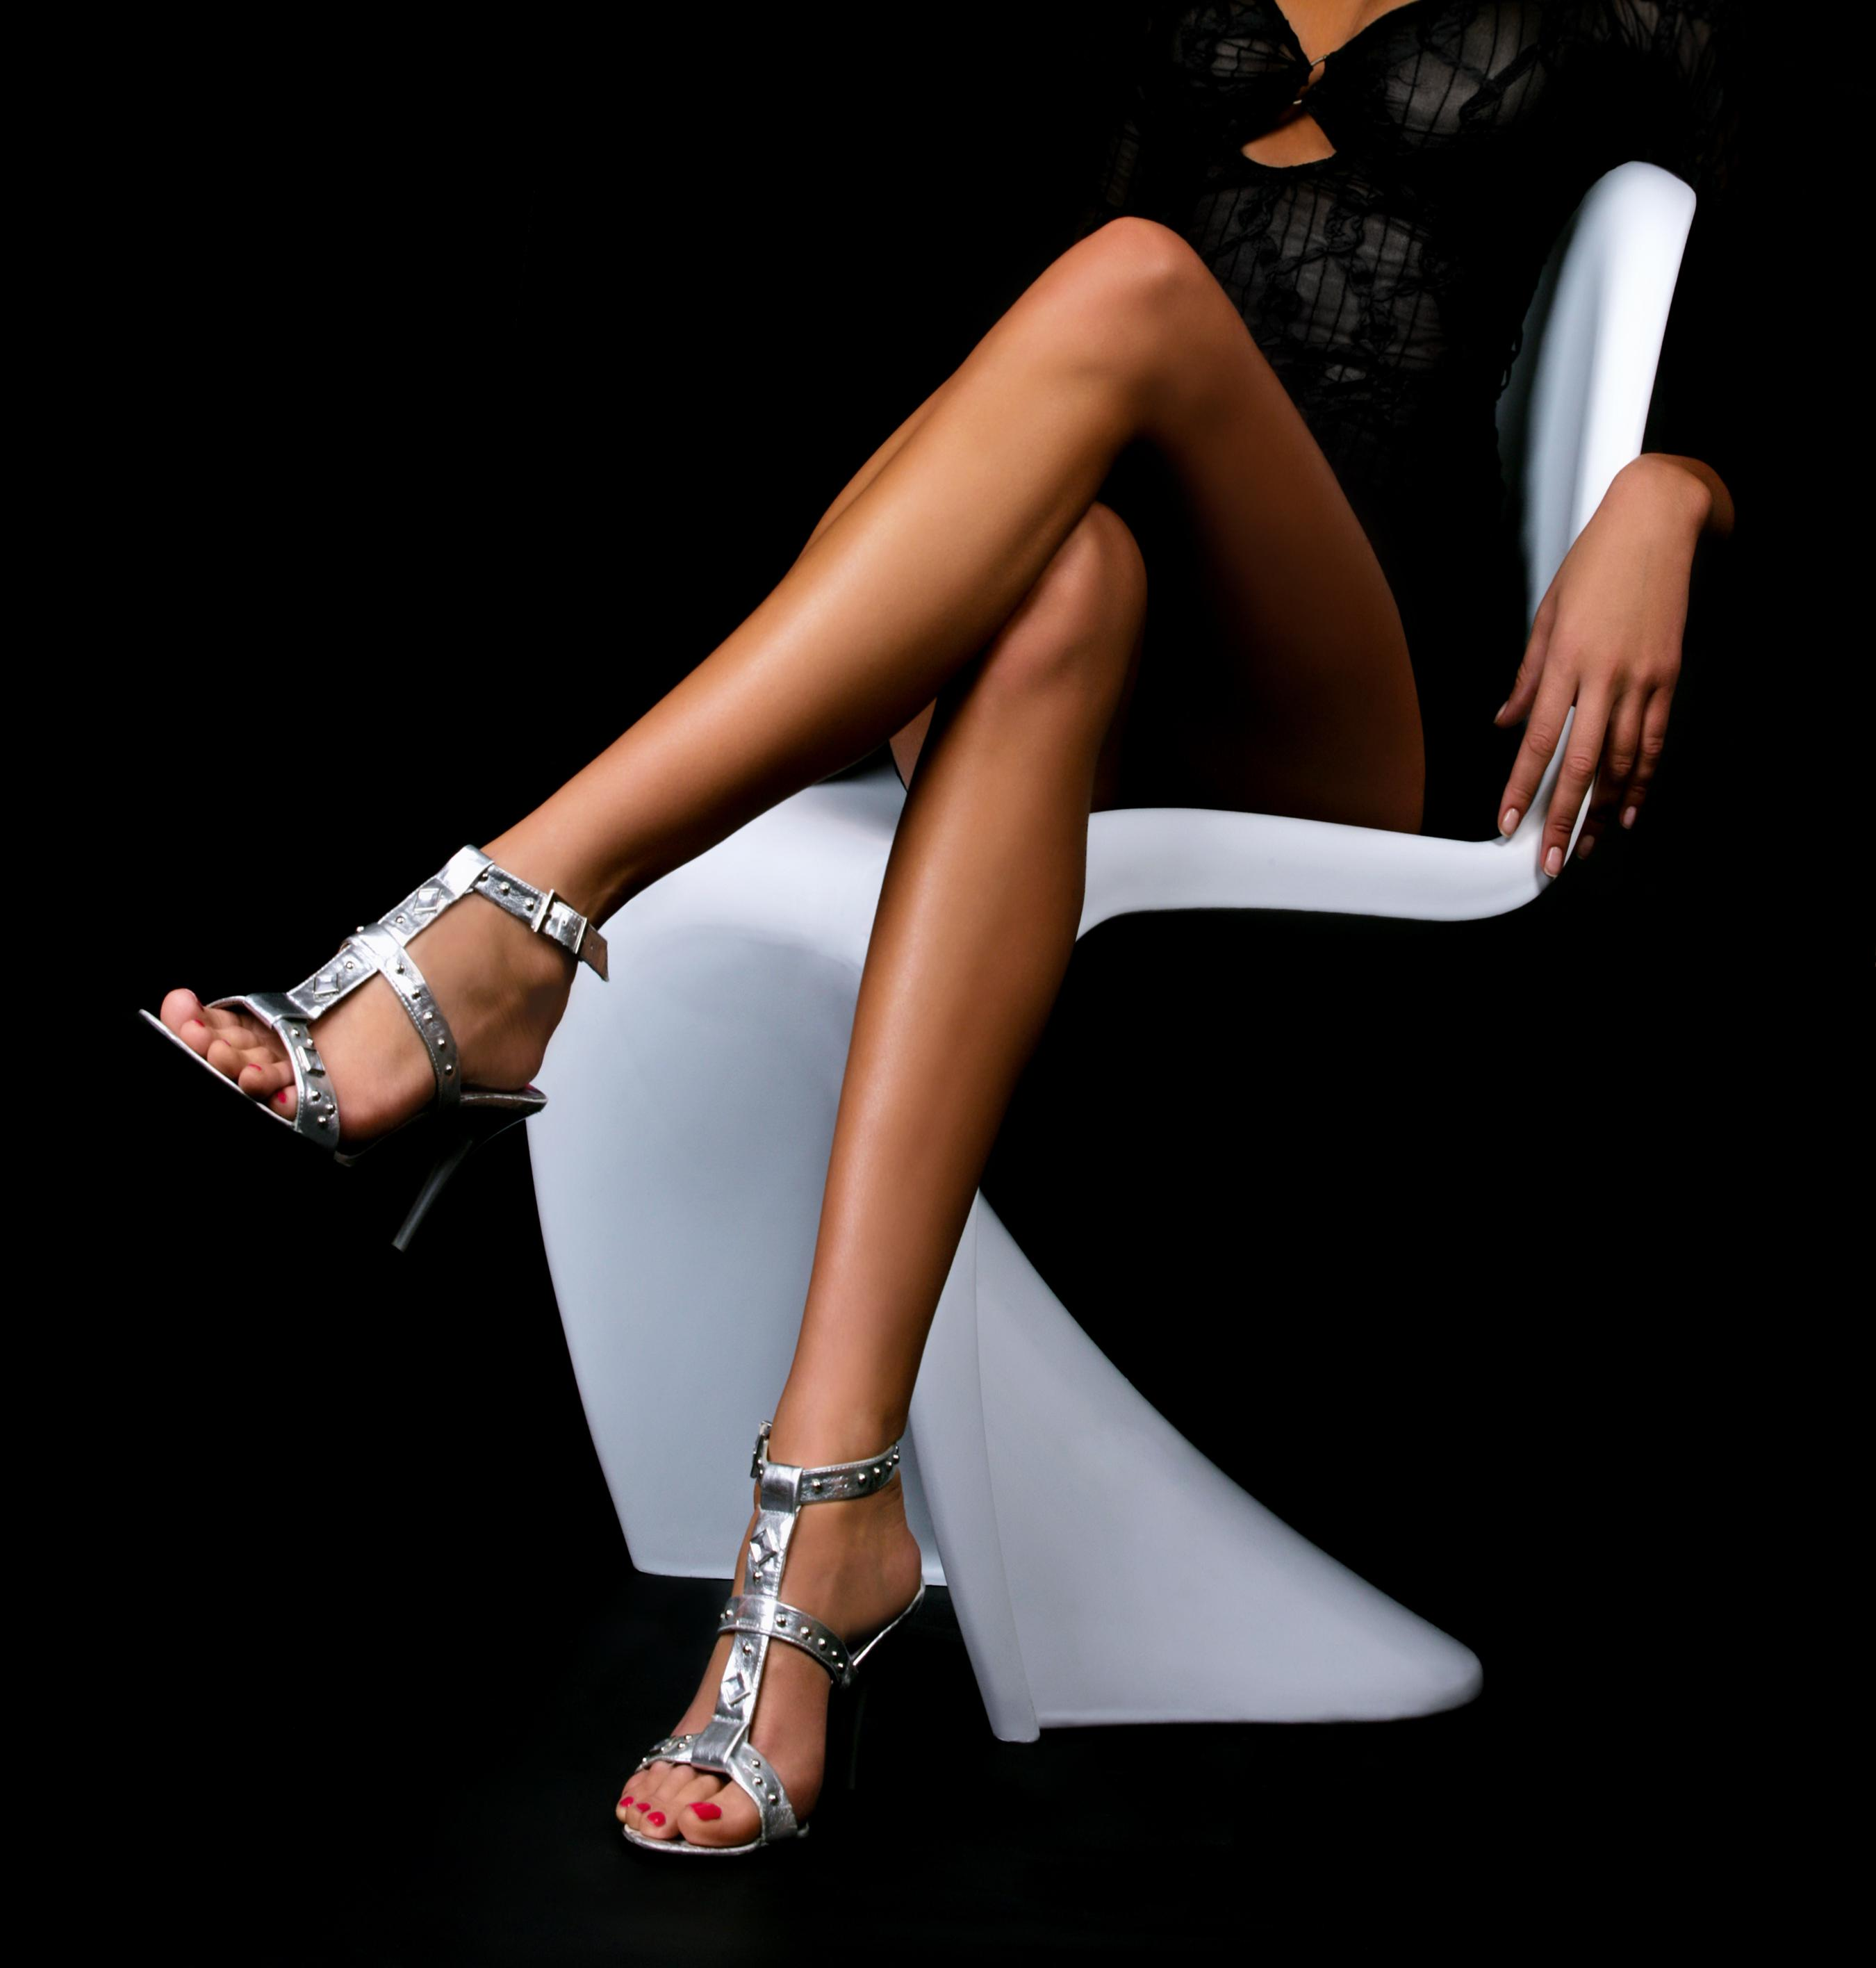 Optical Illusion Shiny Legs Or White Paint The Light